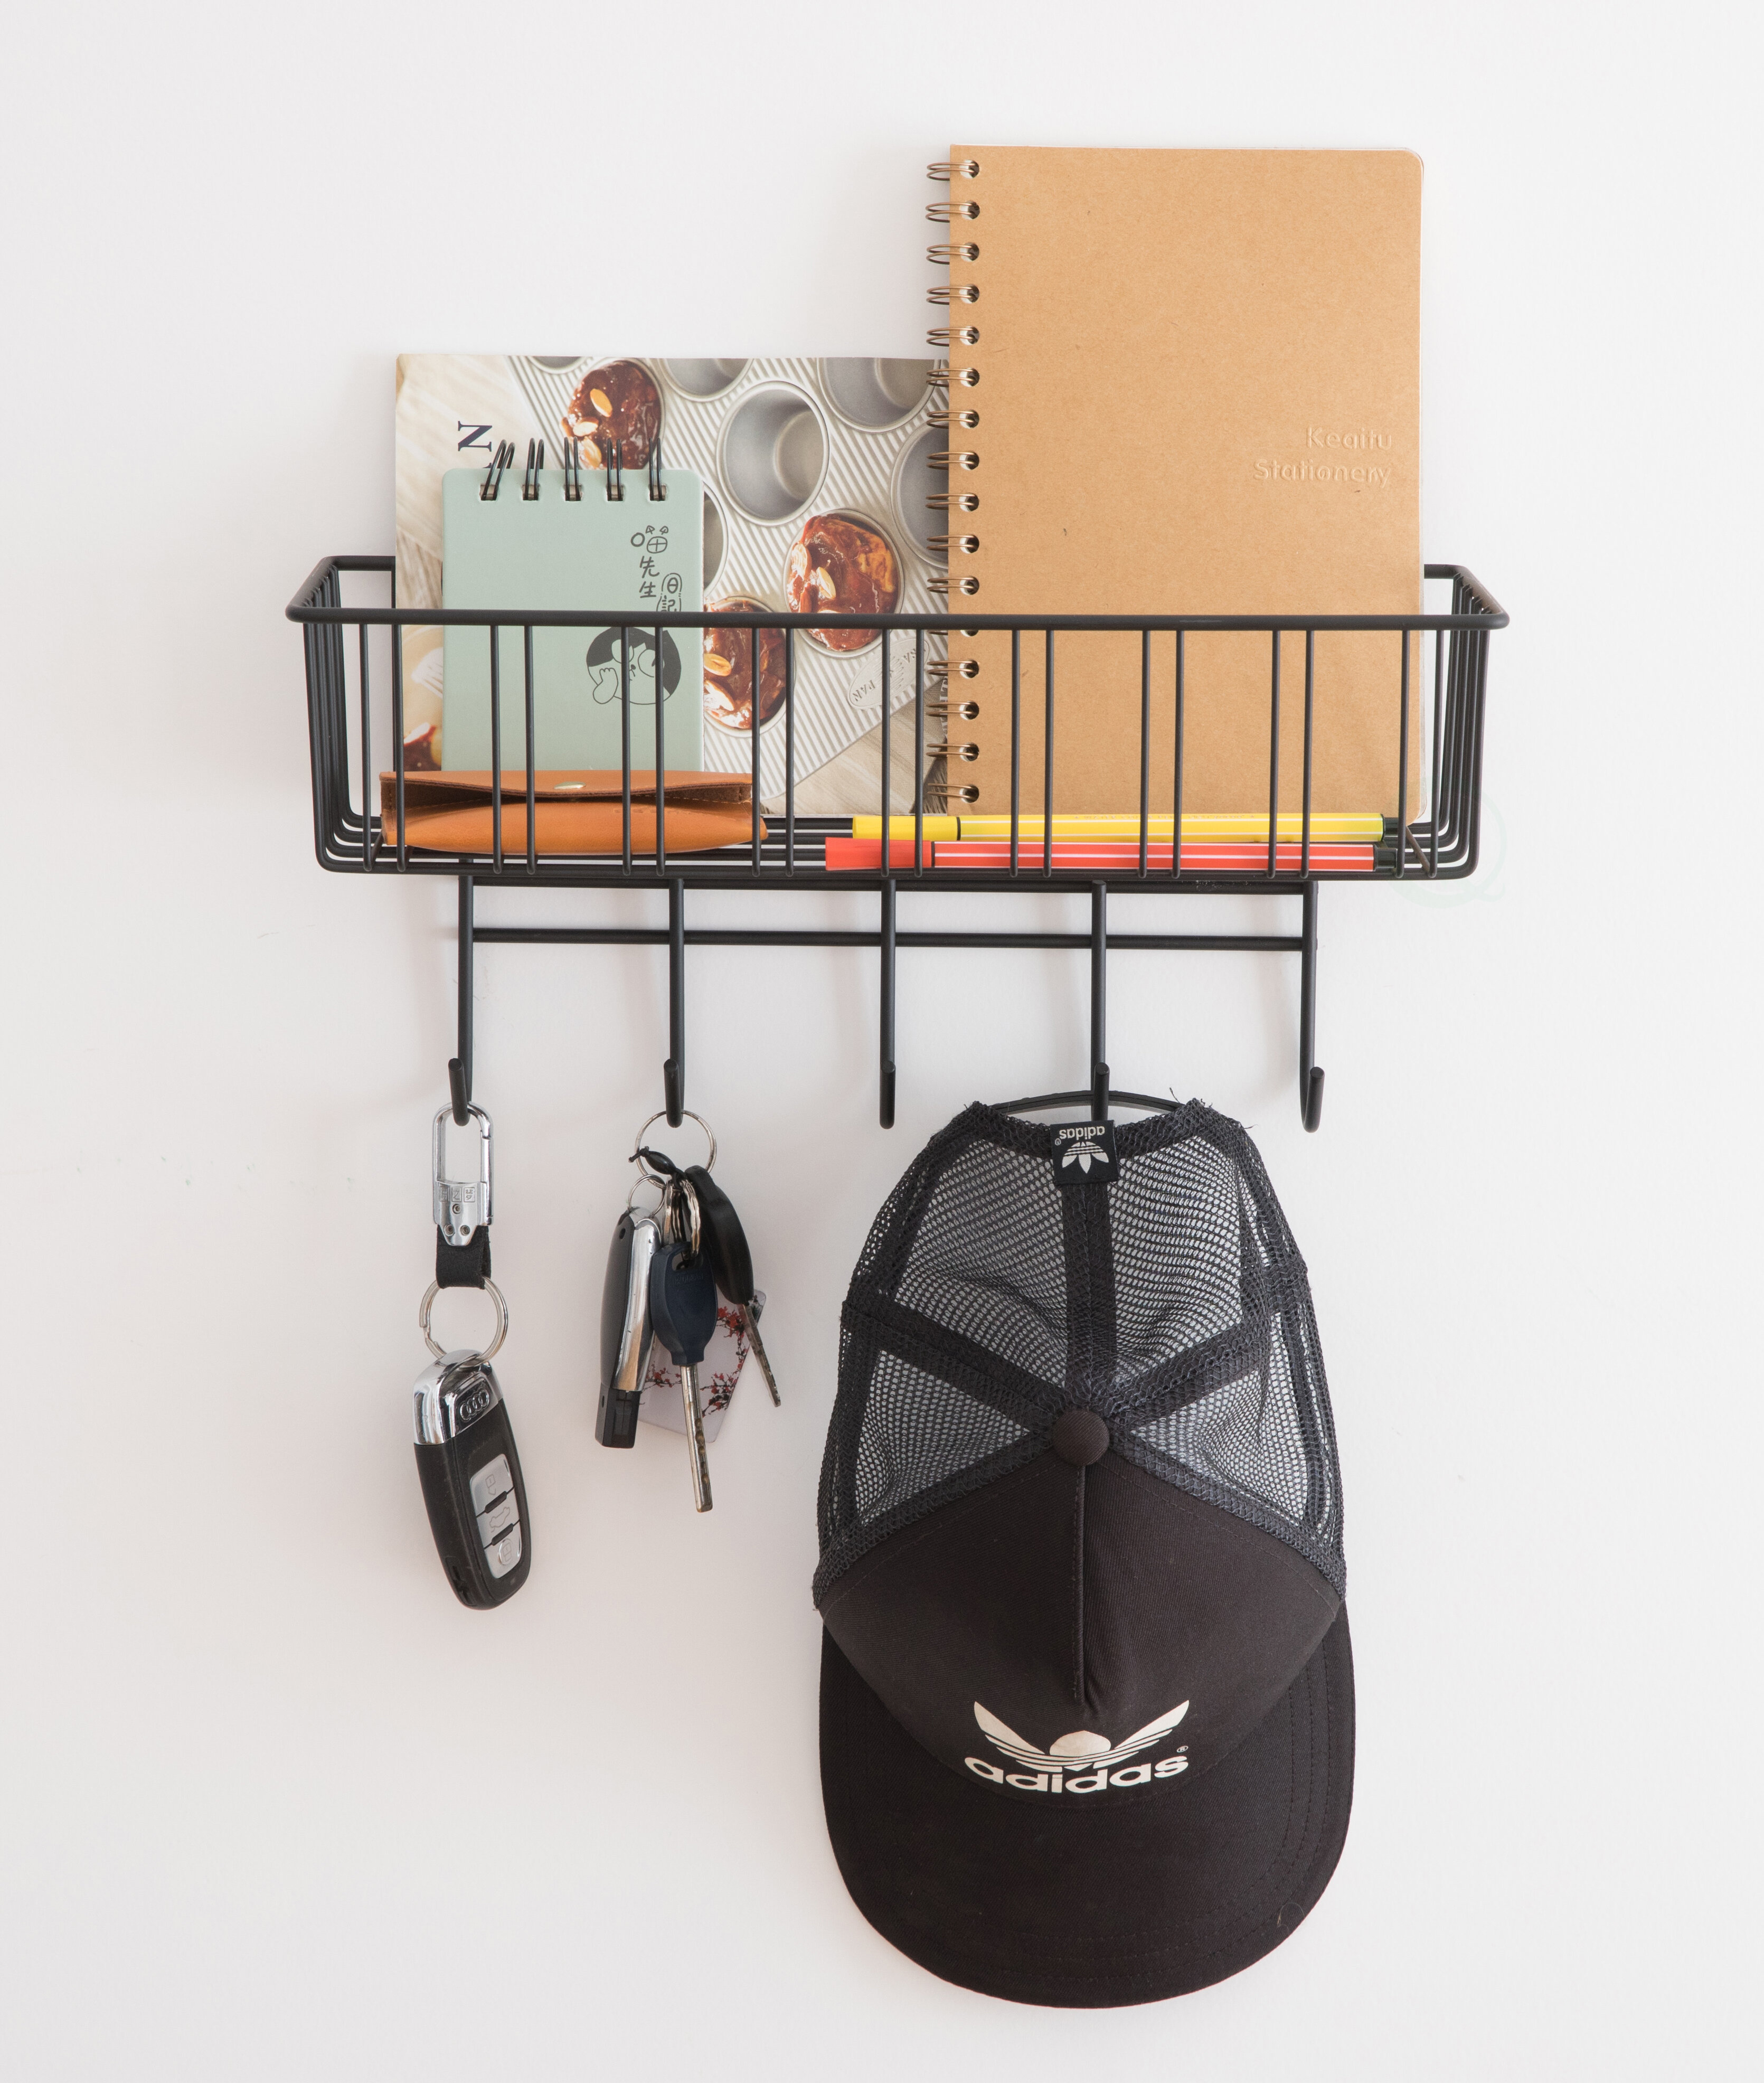 Rebrilliant Aster Wall Key Organizer With Key Hooks And Wall Baskets Reviews Wayfair